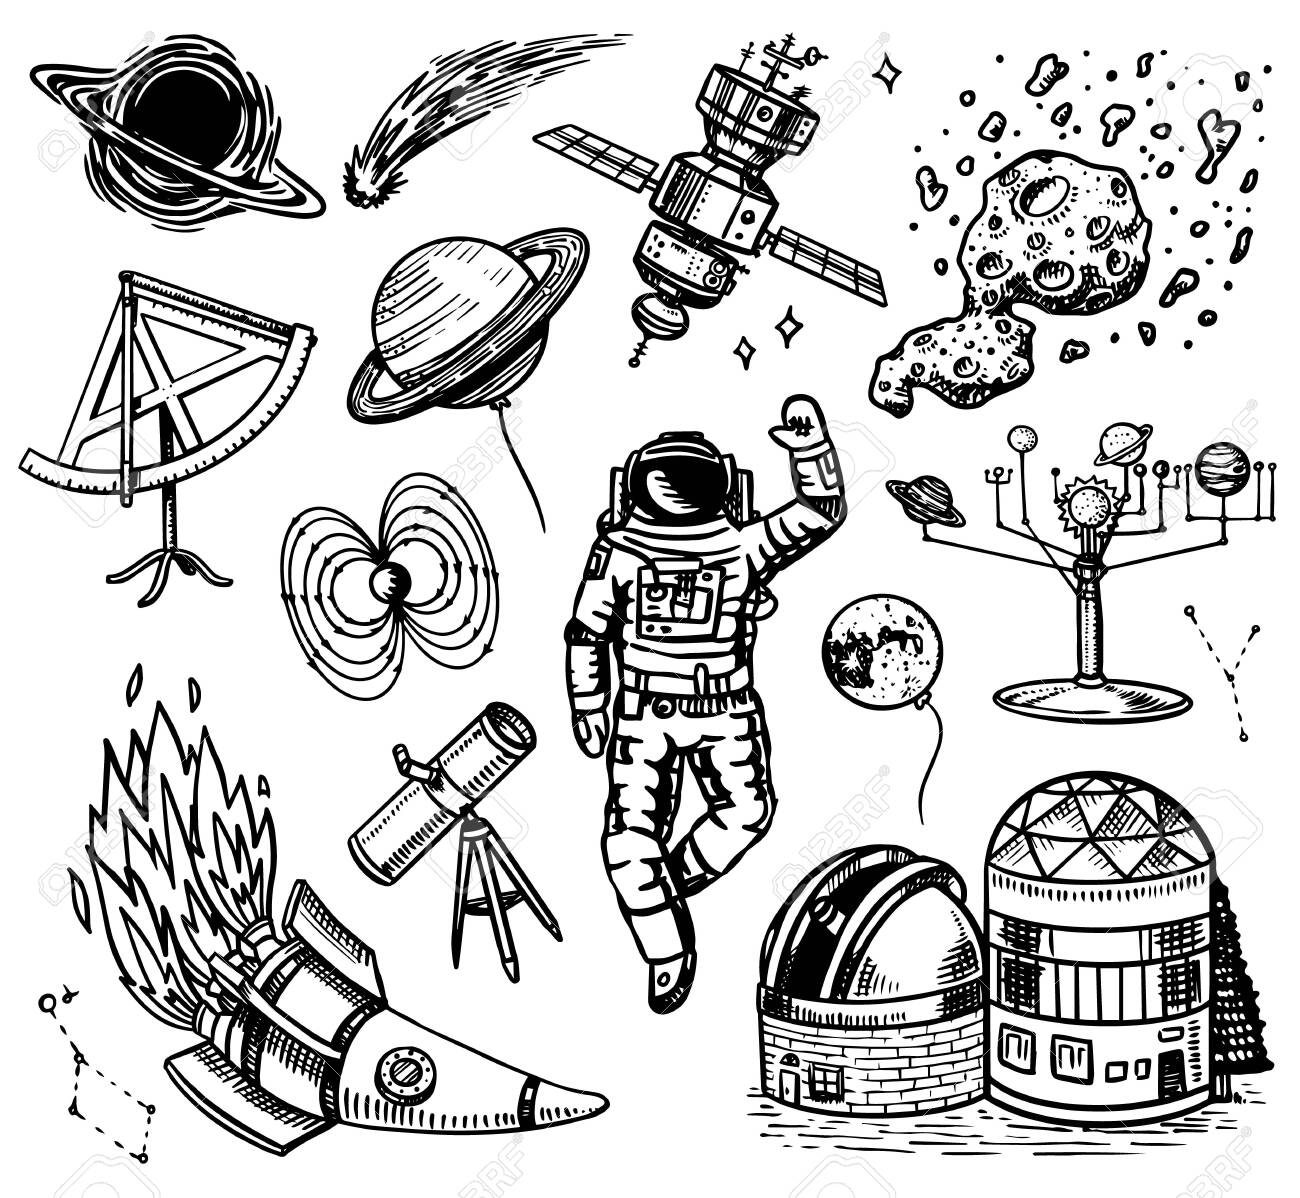 Astronomy background in vintage style. Space and cosmonaut, moon and spaceships, meteorite and stars, planets and observatory. Hand drawn in retro doodle style. - 128029146